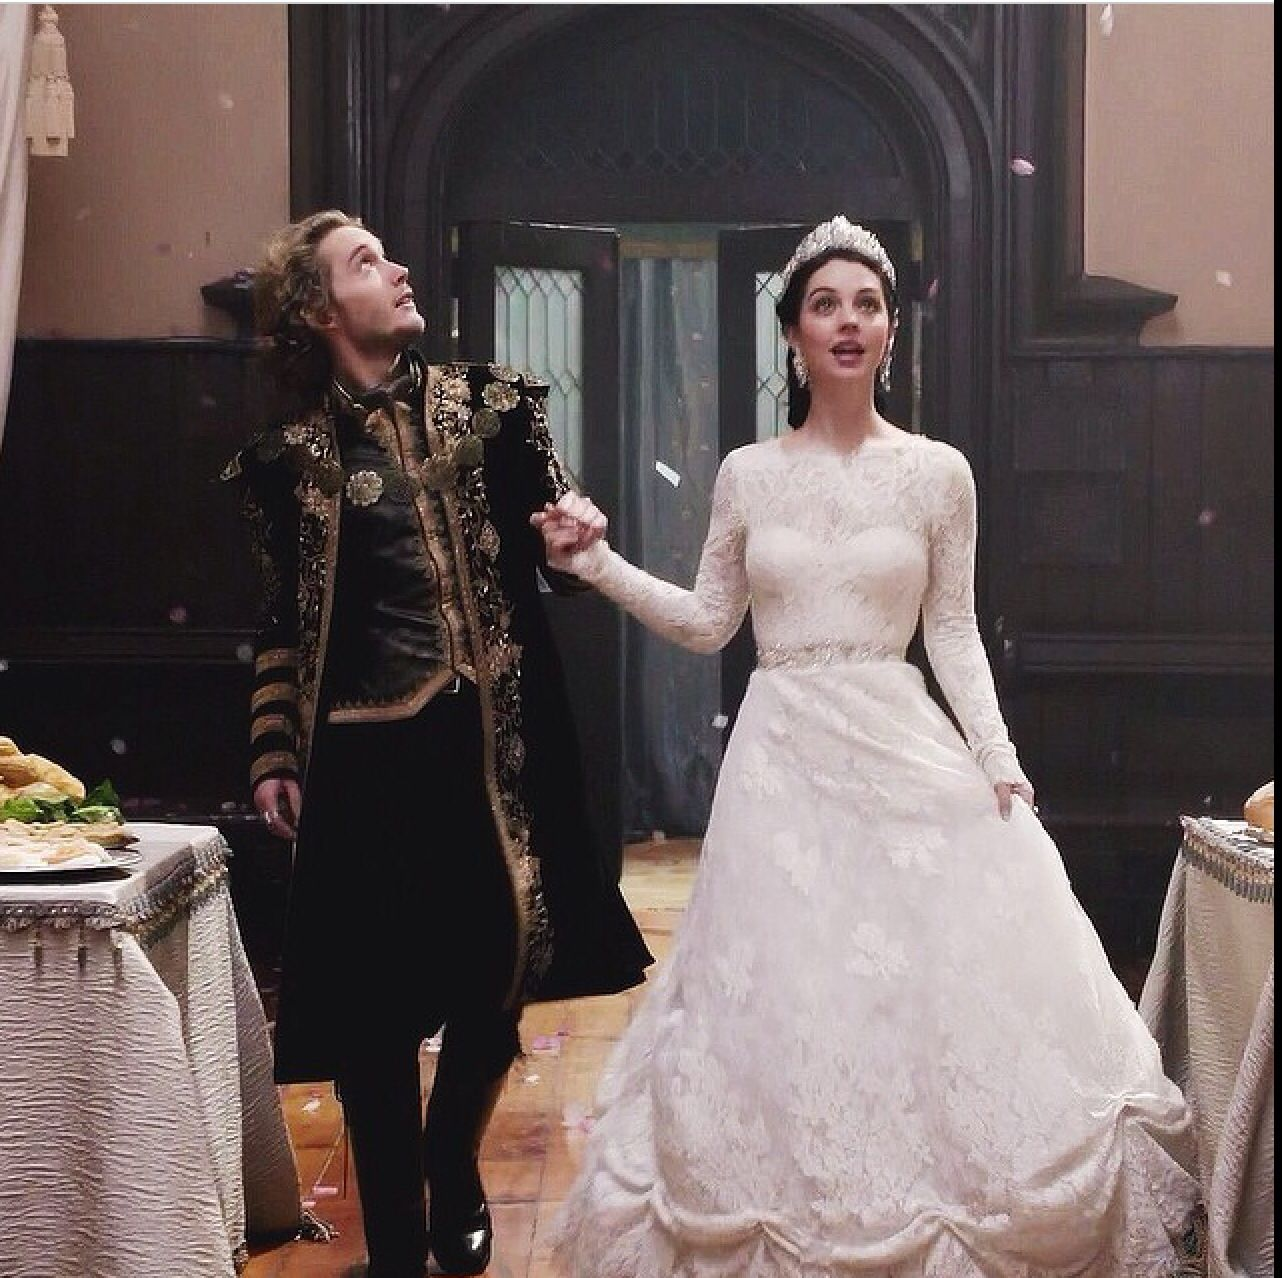 Francis and mary39s wedding reign pinterest reign for Reign mary wedding dress